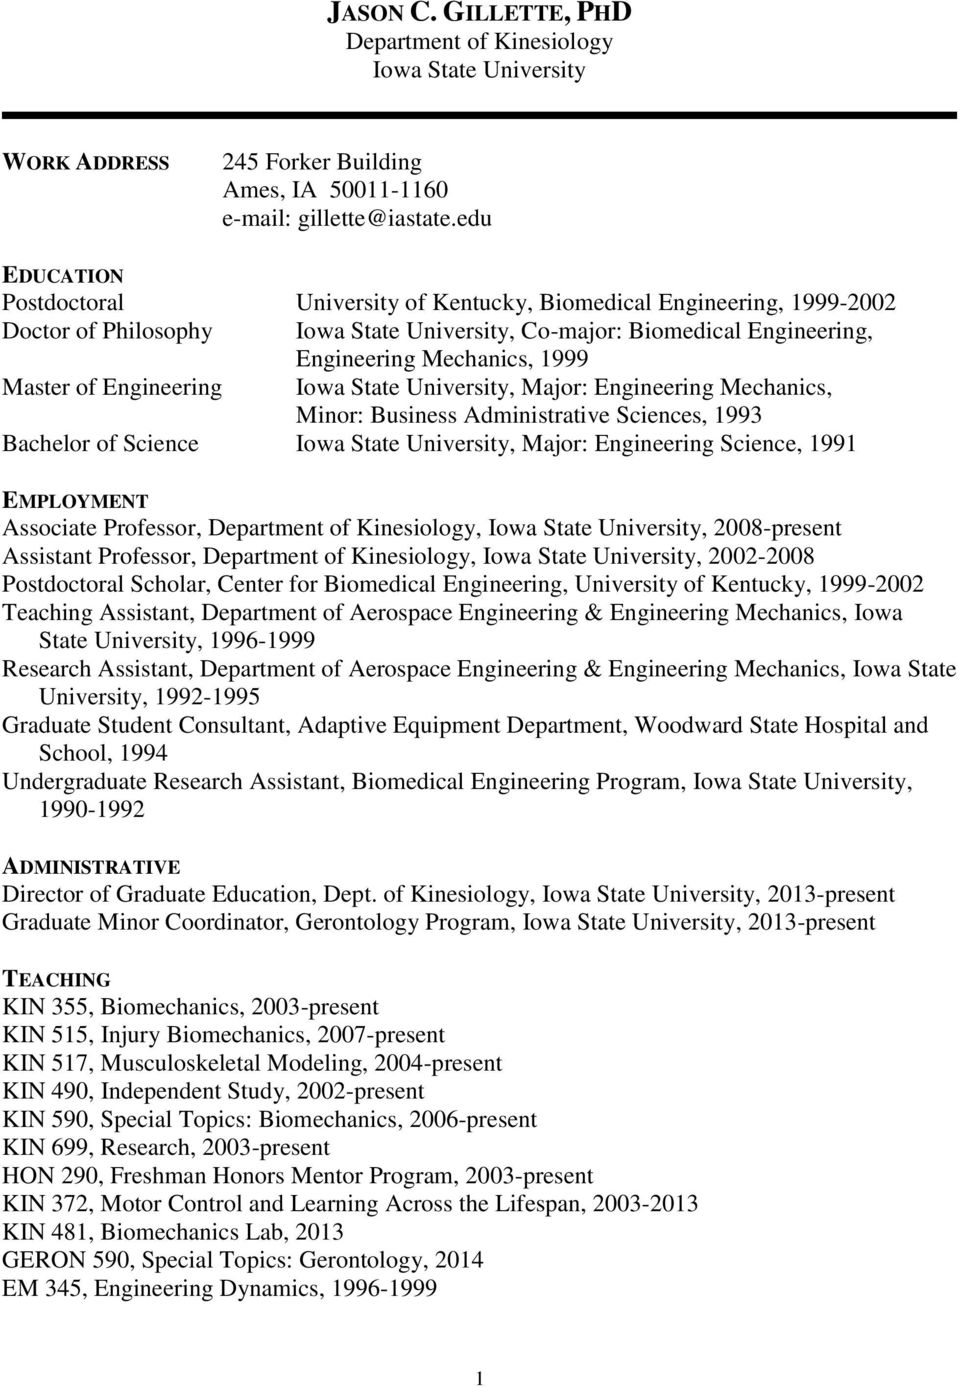 Resume CV Cover Letter  sample resume format for fresh graduates     Marked by Teachers